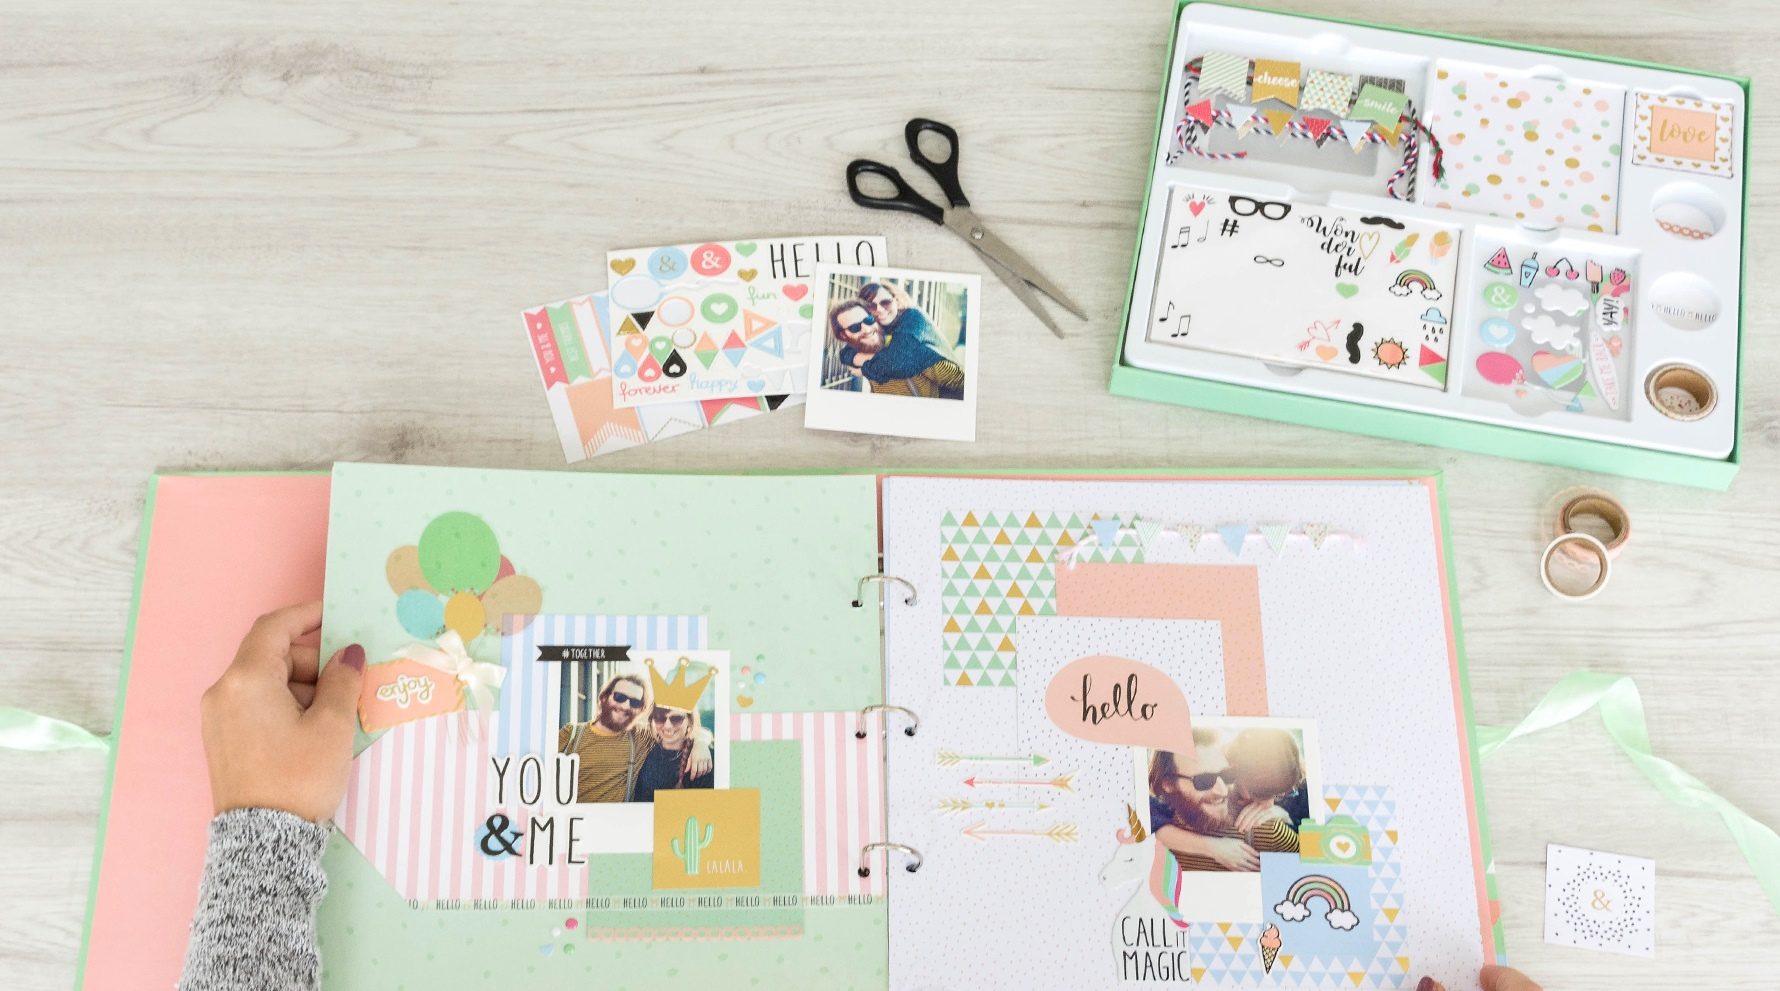 Le scrapbooking pour des photos d'exception